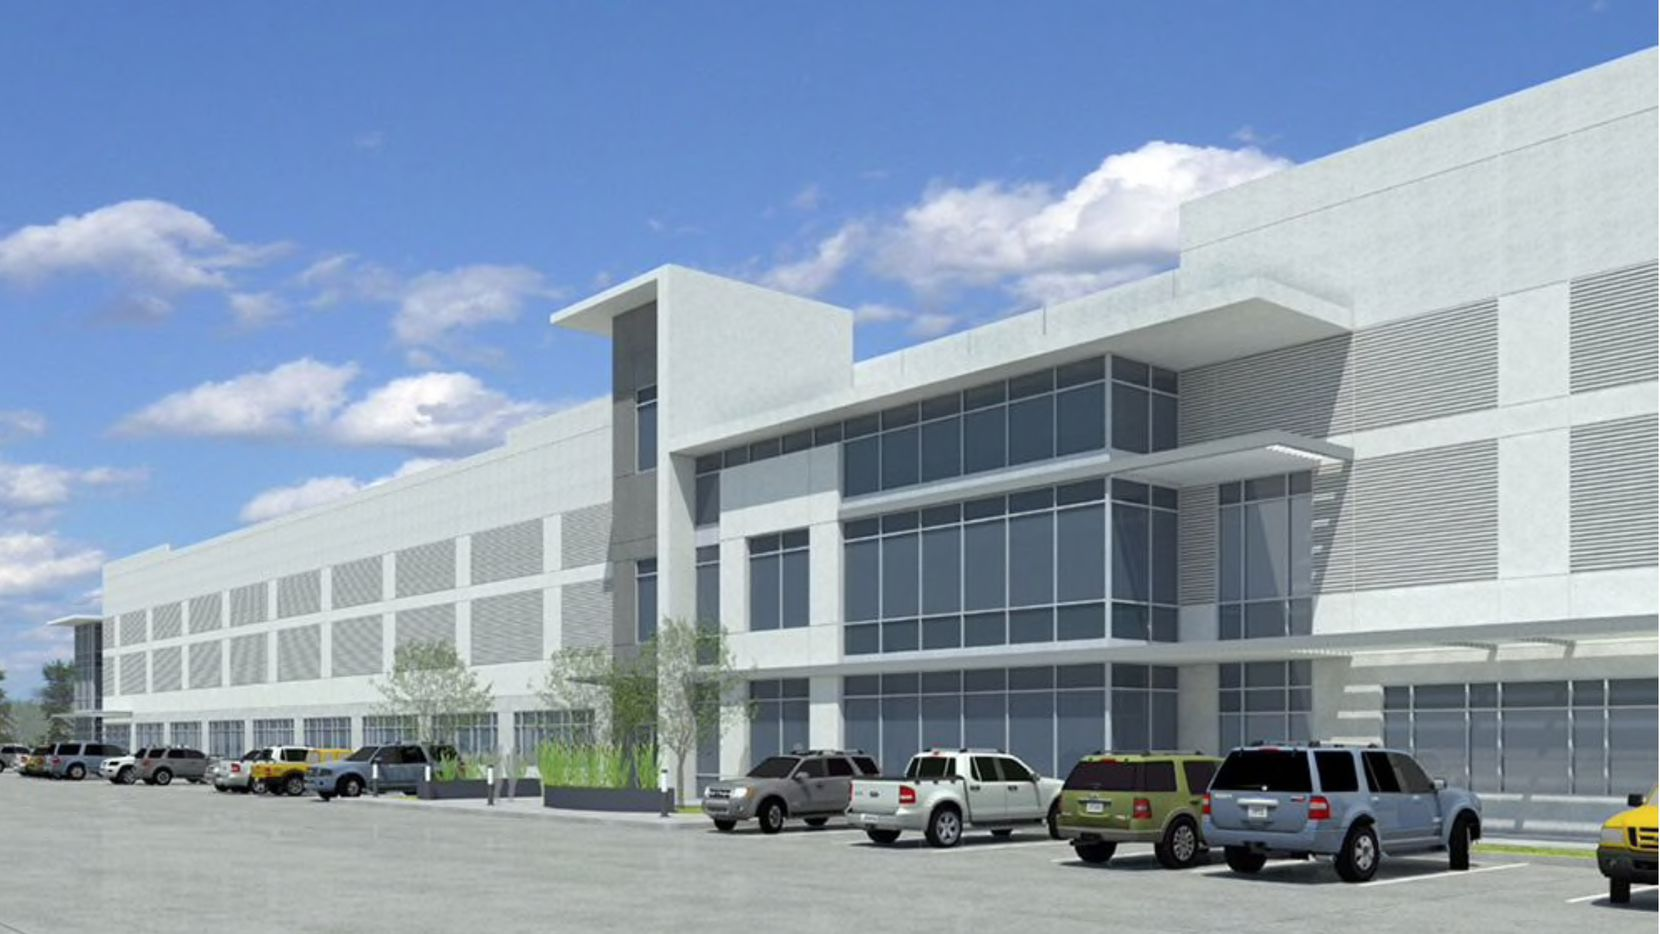 Bandera Ventures teamed up with Invesco Real Estate to build the speculative industrial development south of Interstate 20